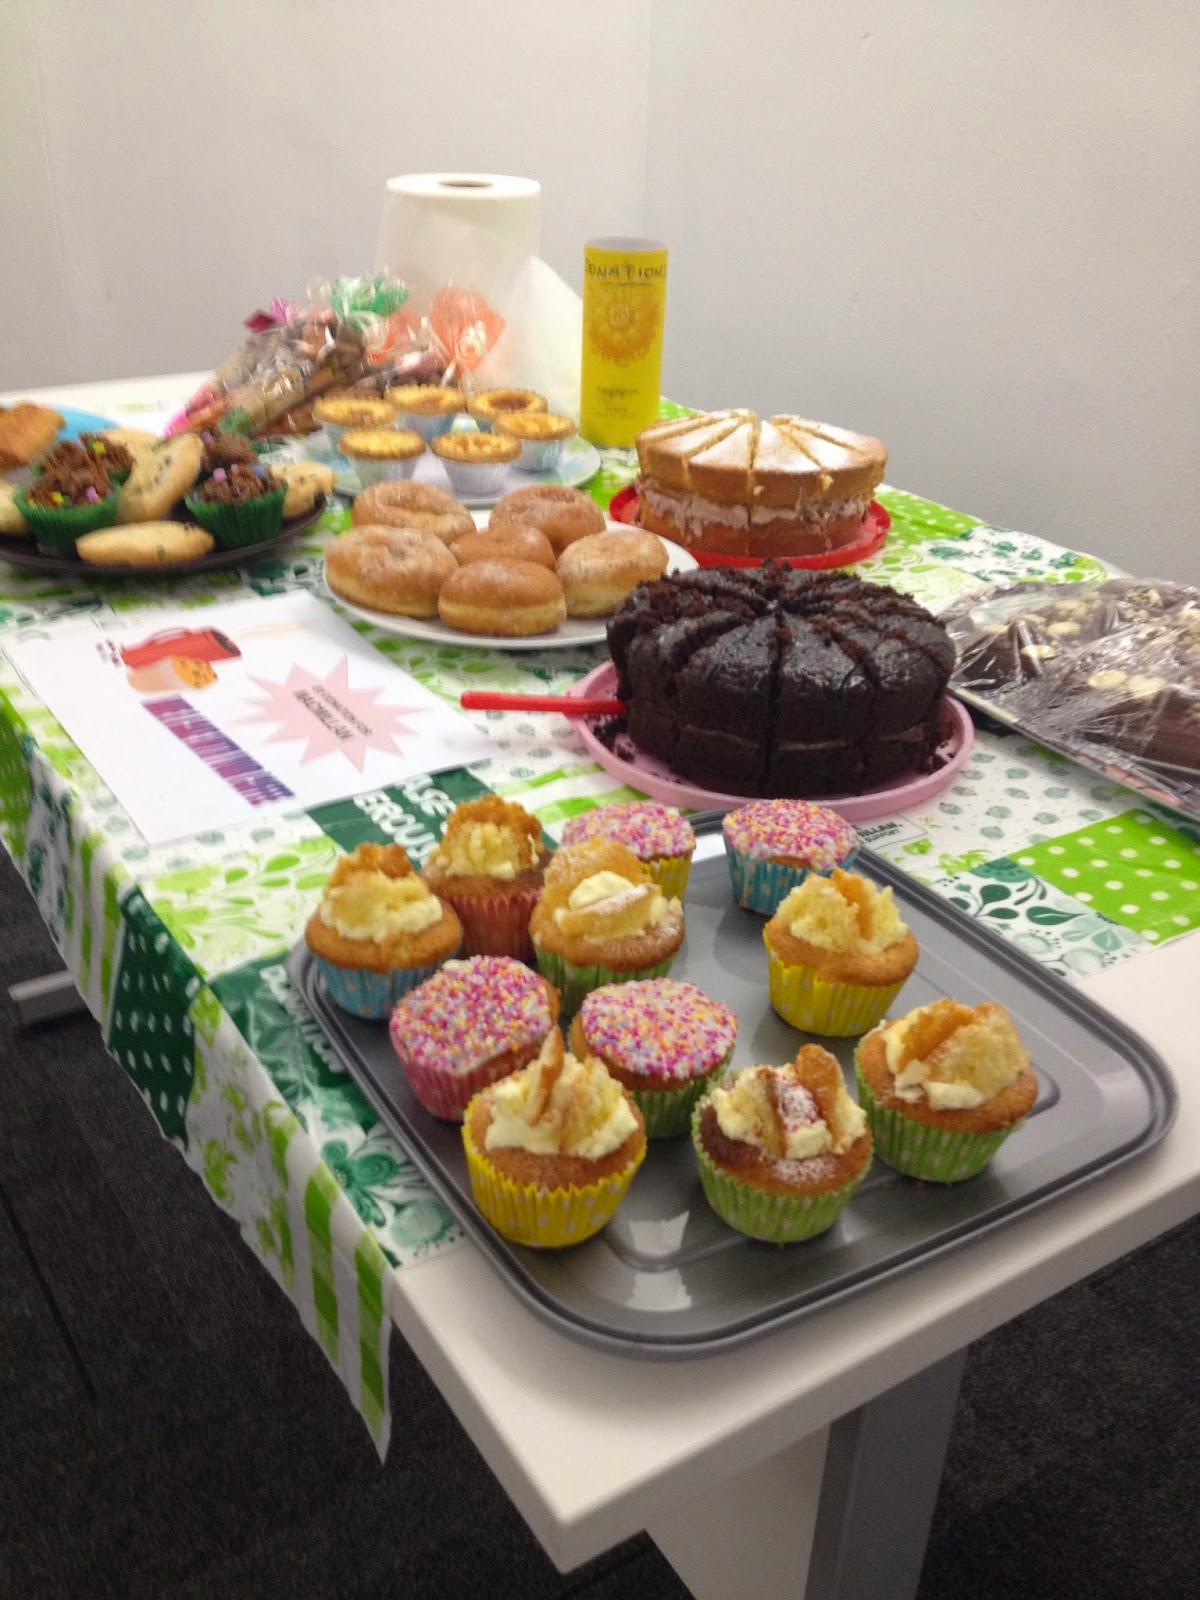 CAkes for Macmillan